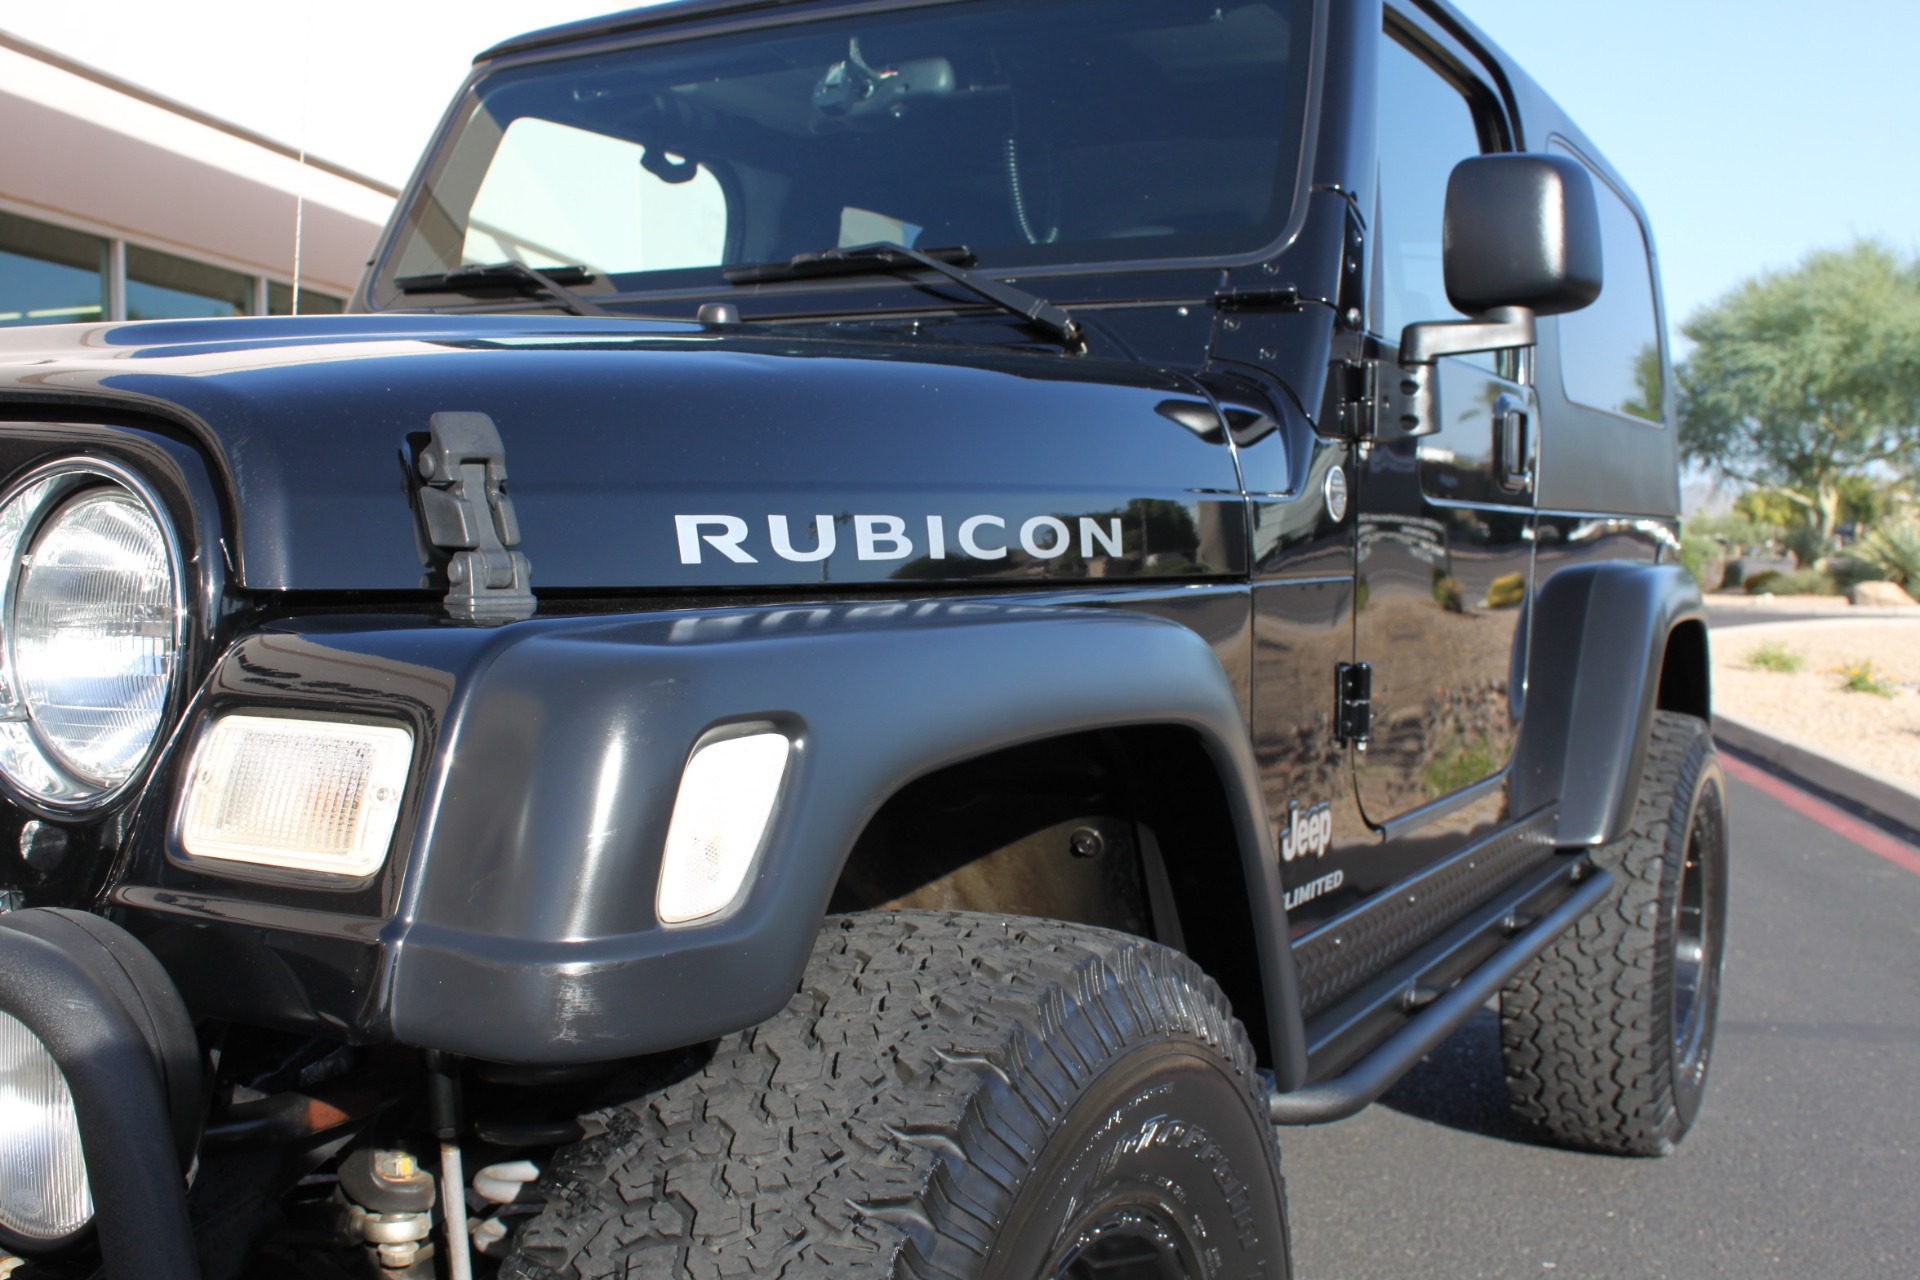 Used-2006-Jeep-Wrangler-Unlimited-Rubicon-LWB-Toyota